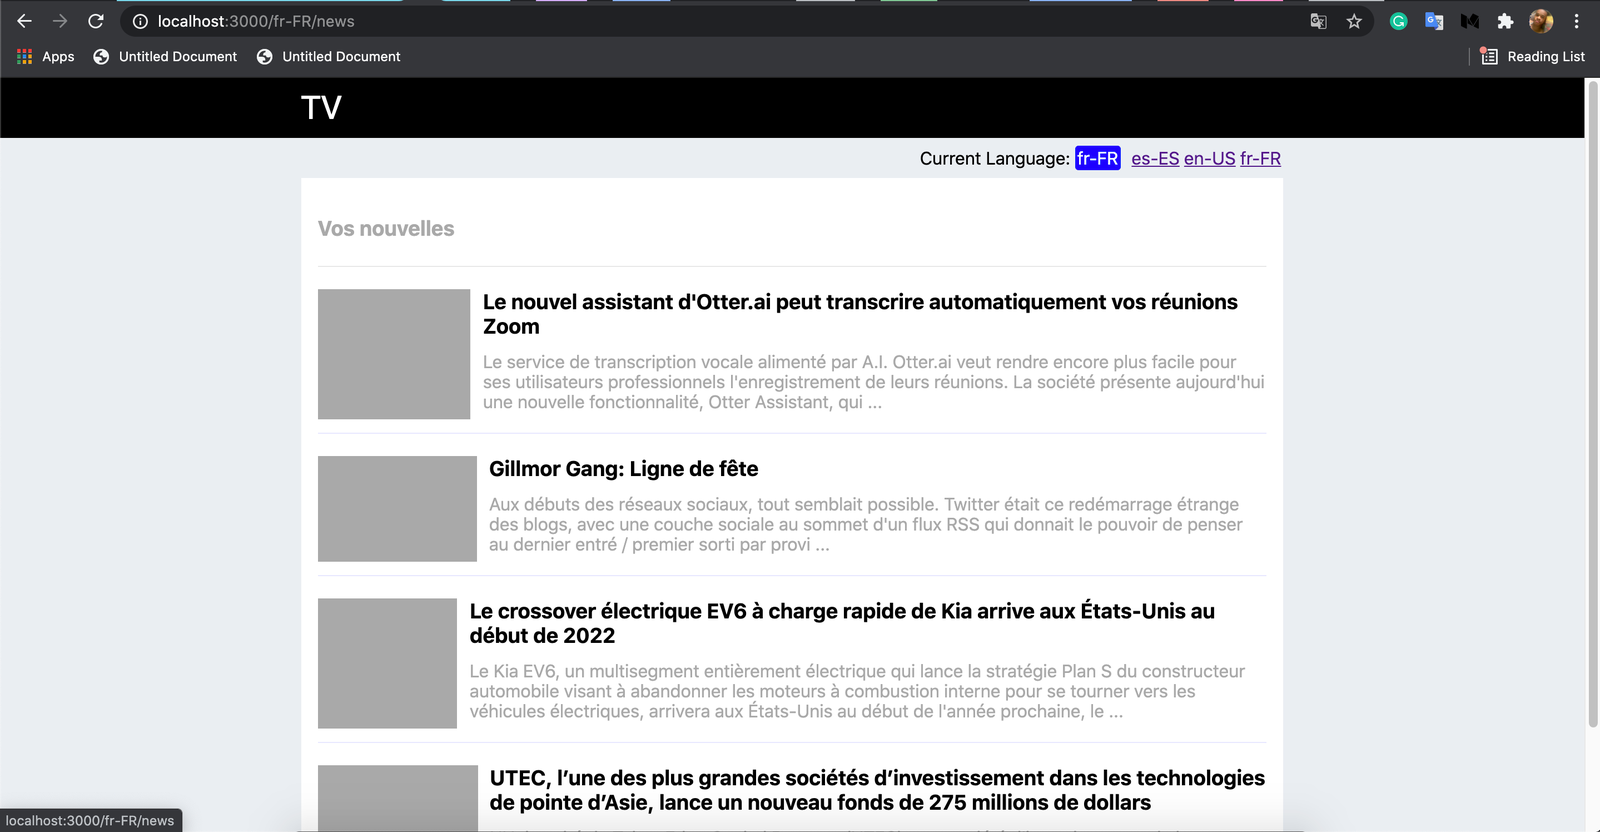 Our News site in French